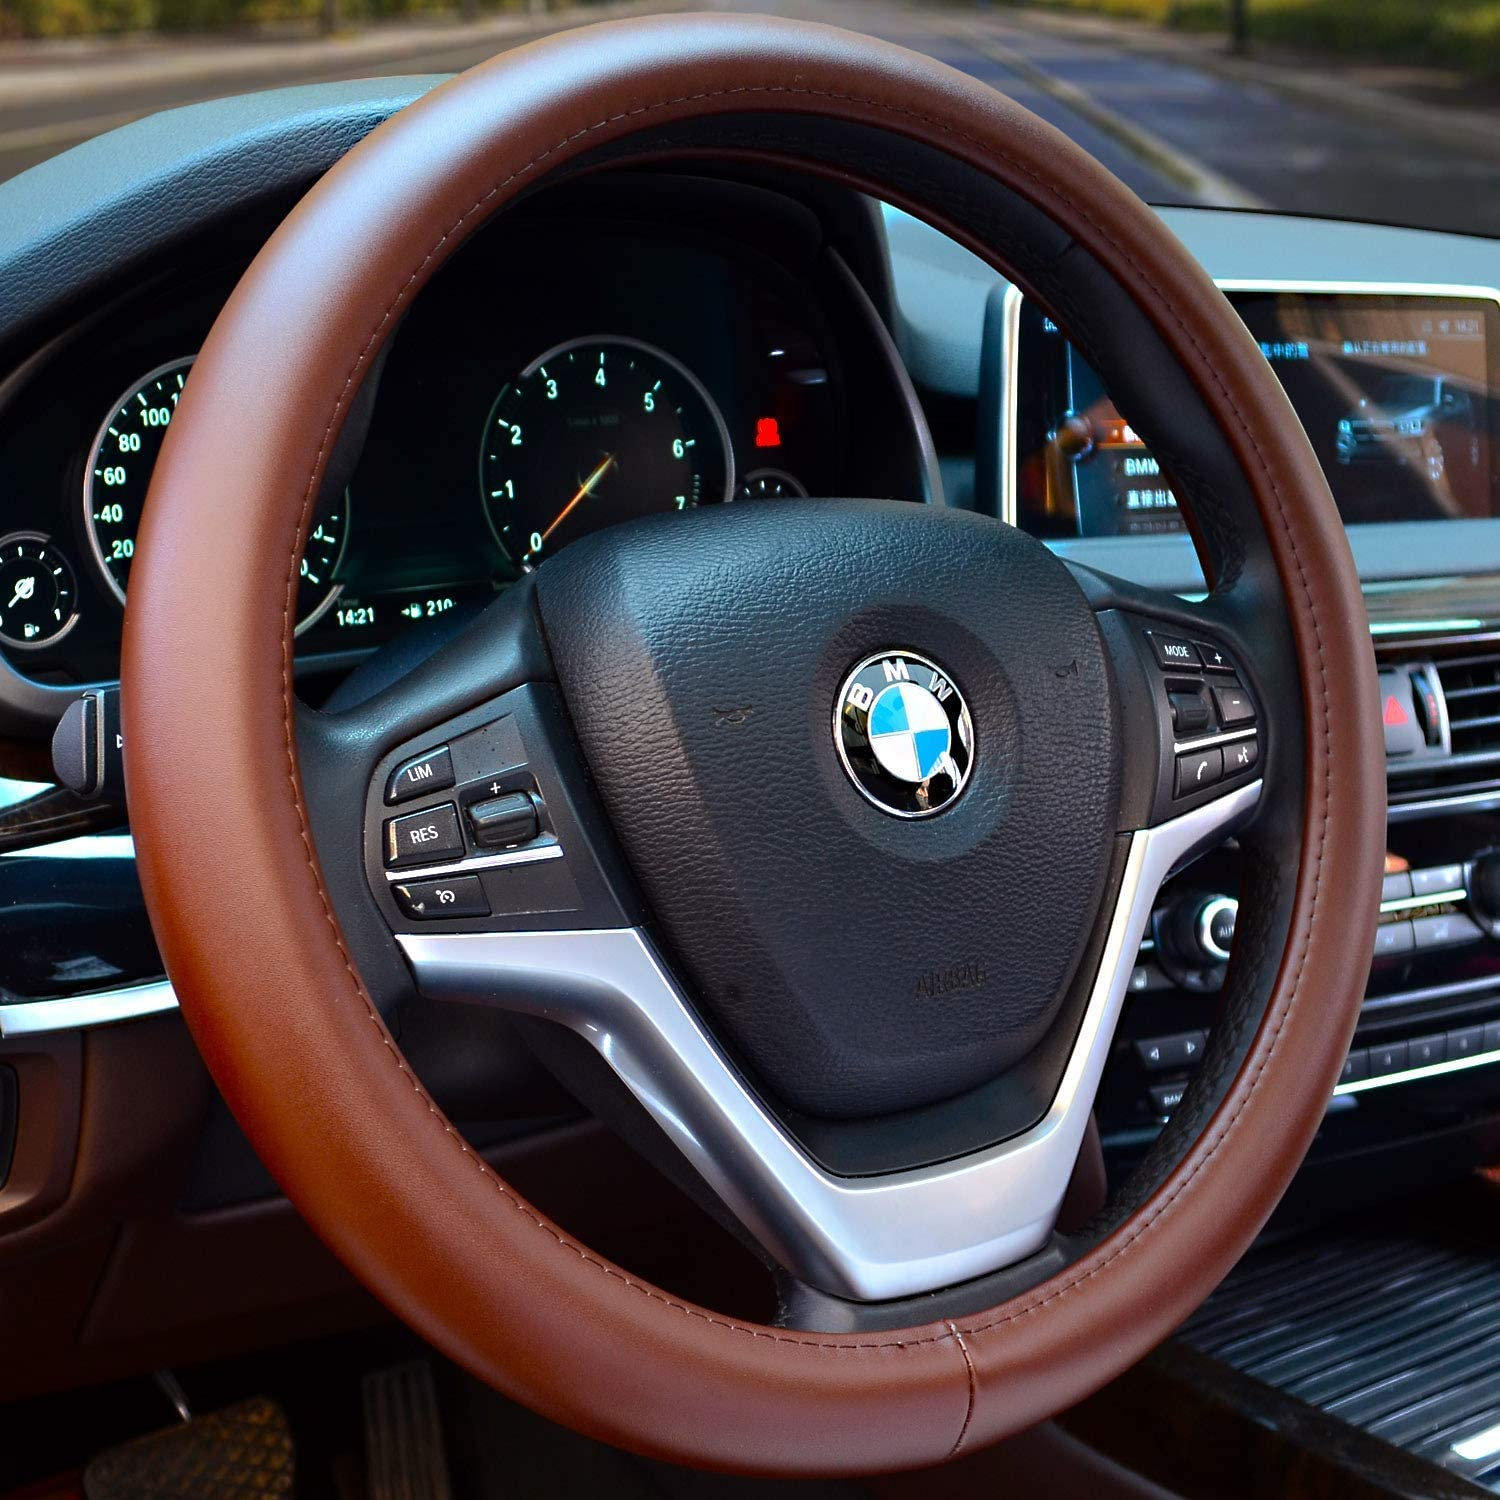 Valleycomfy Car Steering Wheel Cover with Genuine Leather